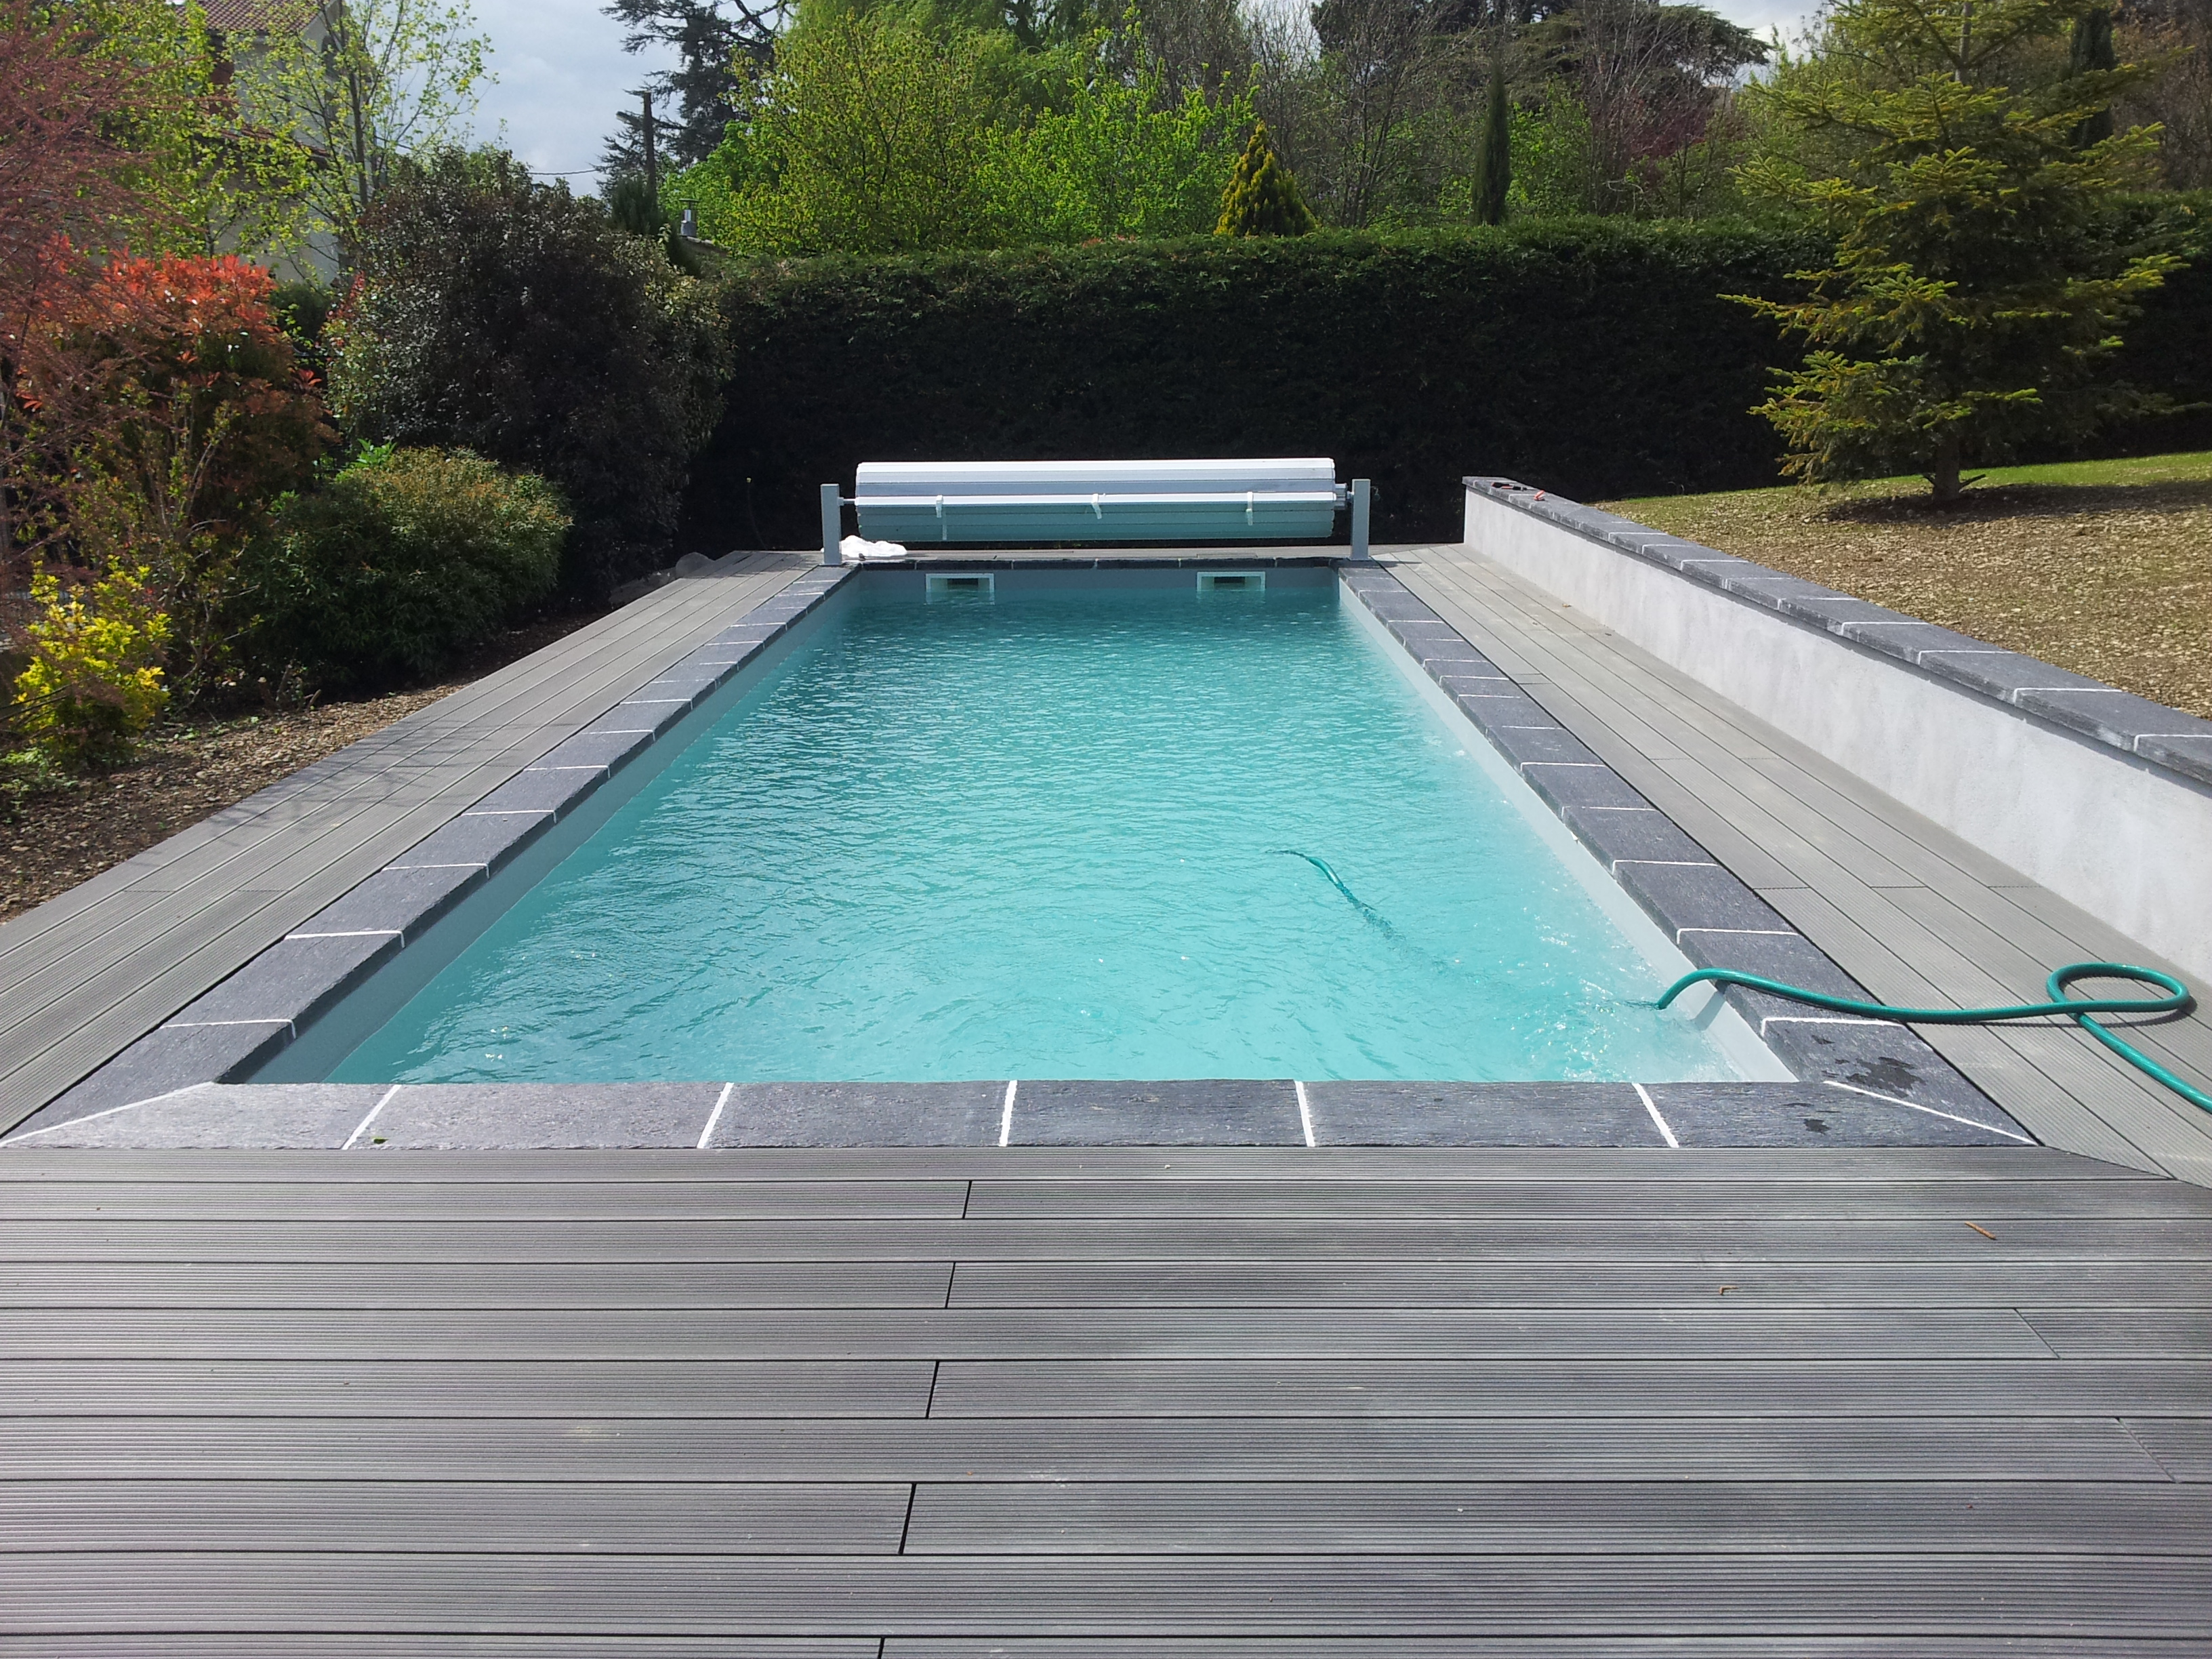 Piscine liner gris clair maison design for Piscine liner